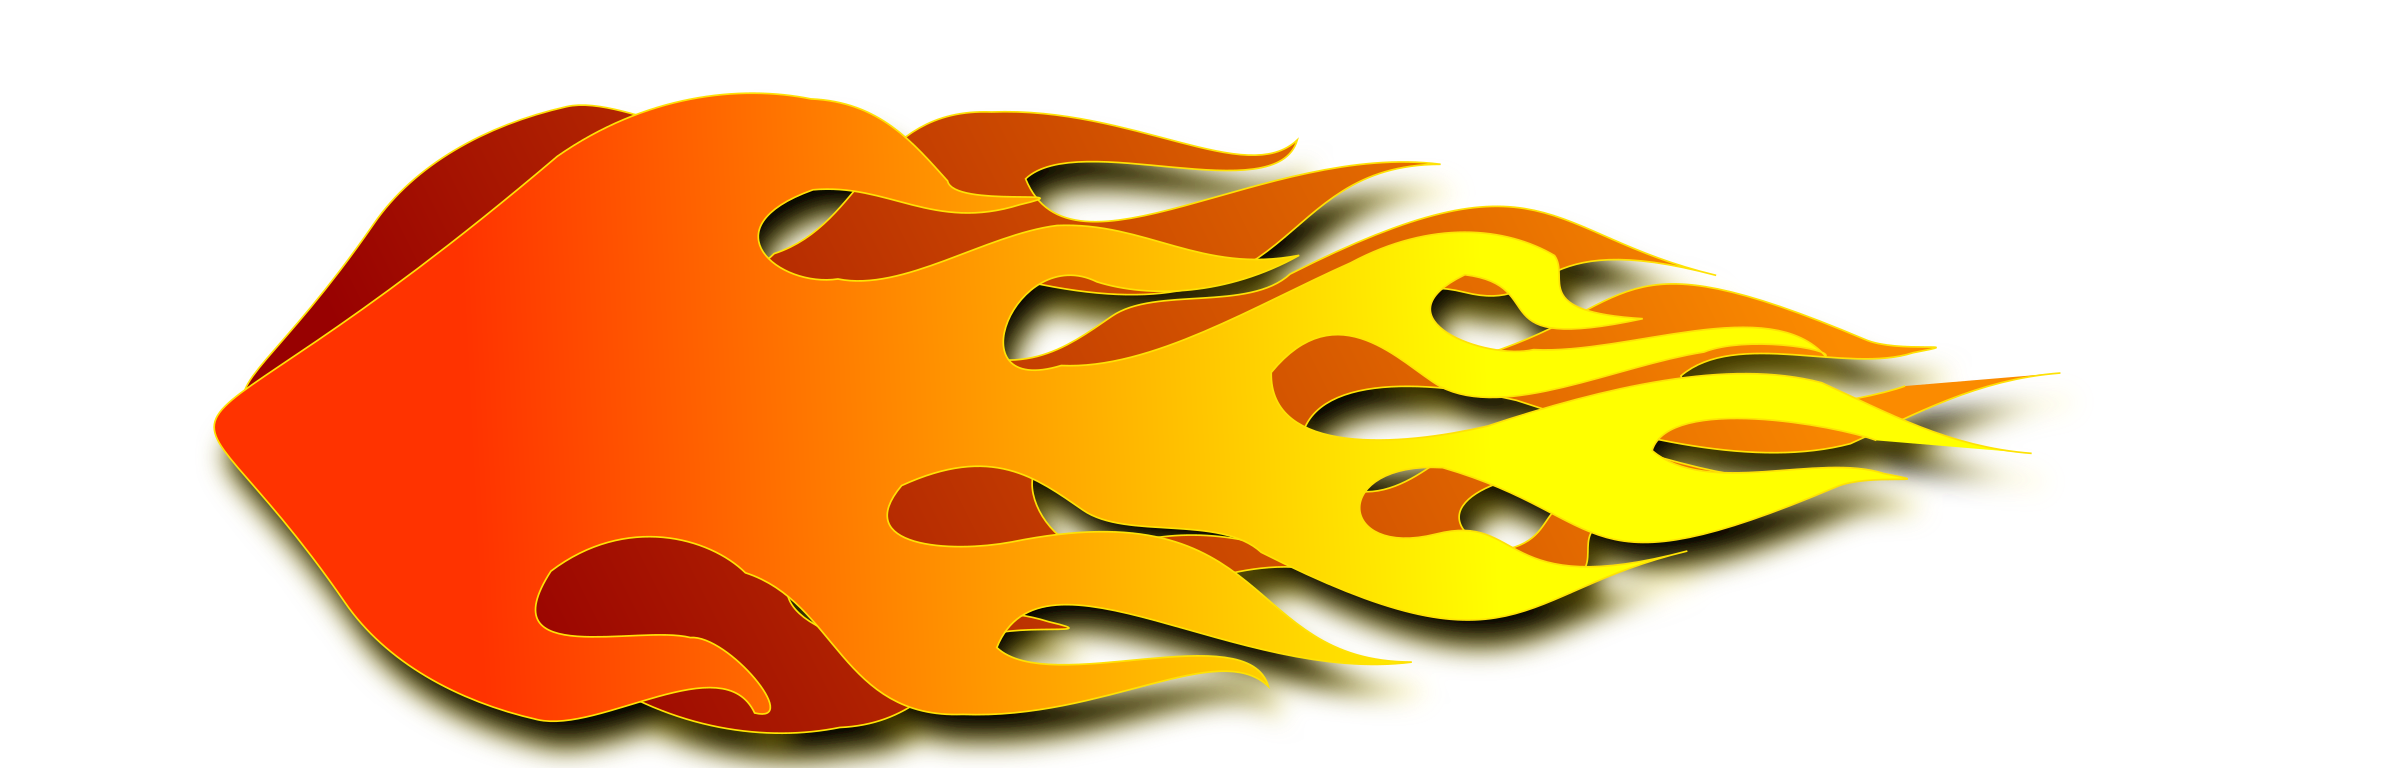 Flame icons png free. Flames clipart svg